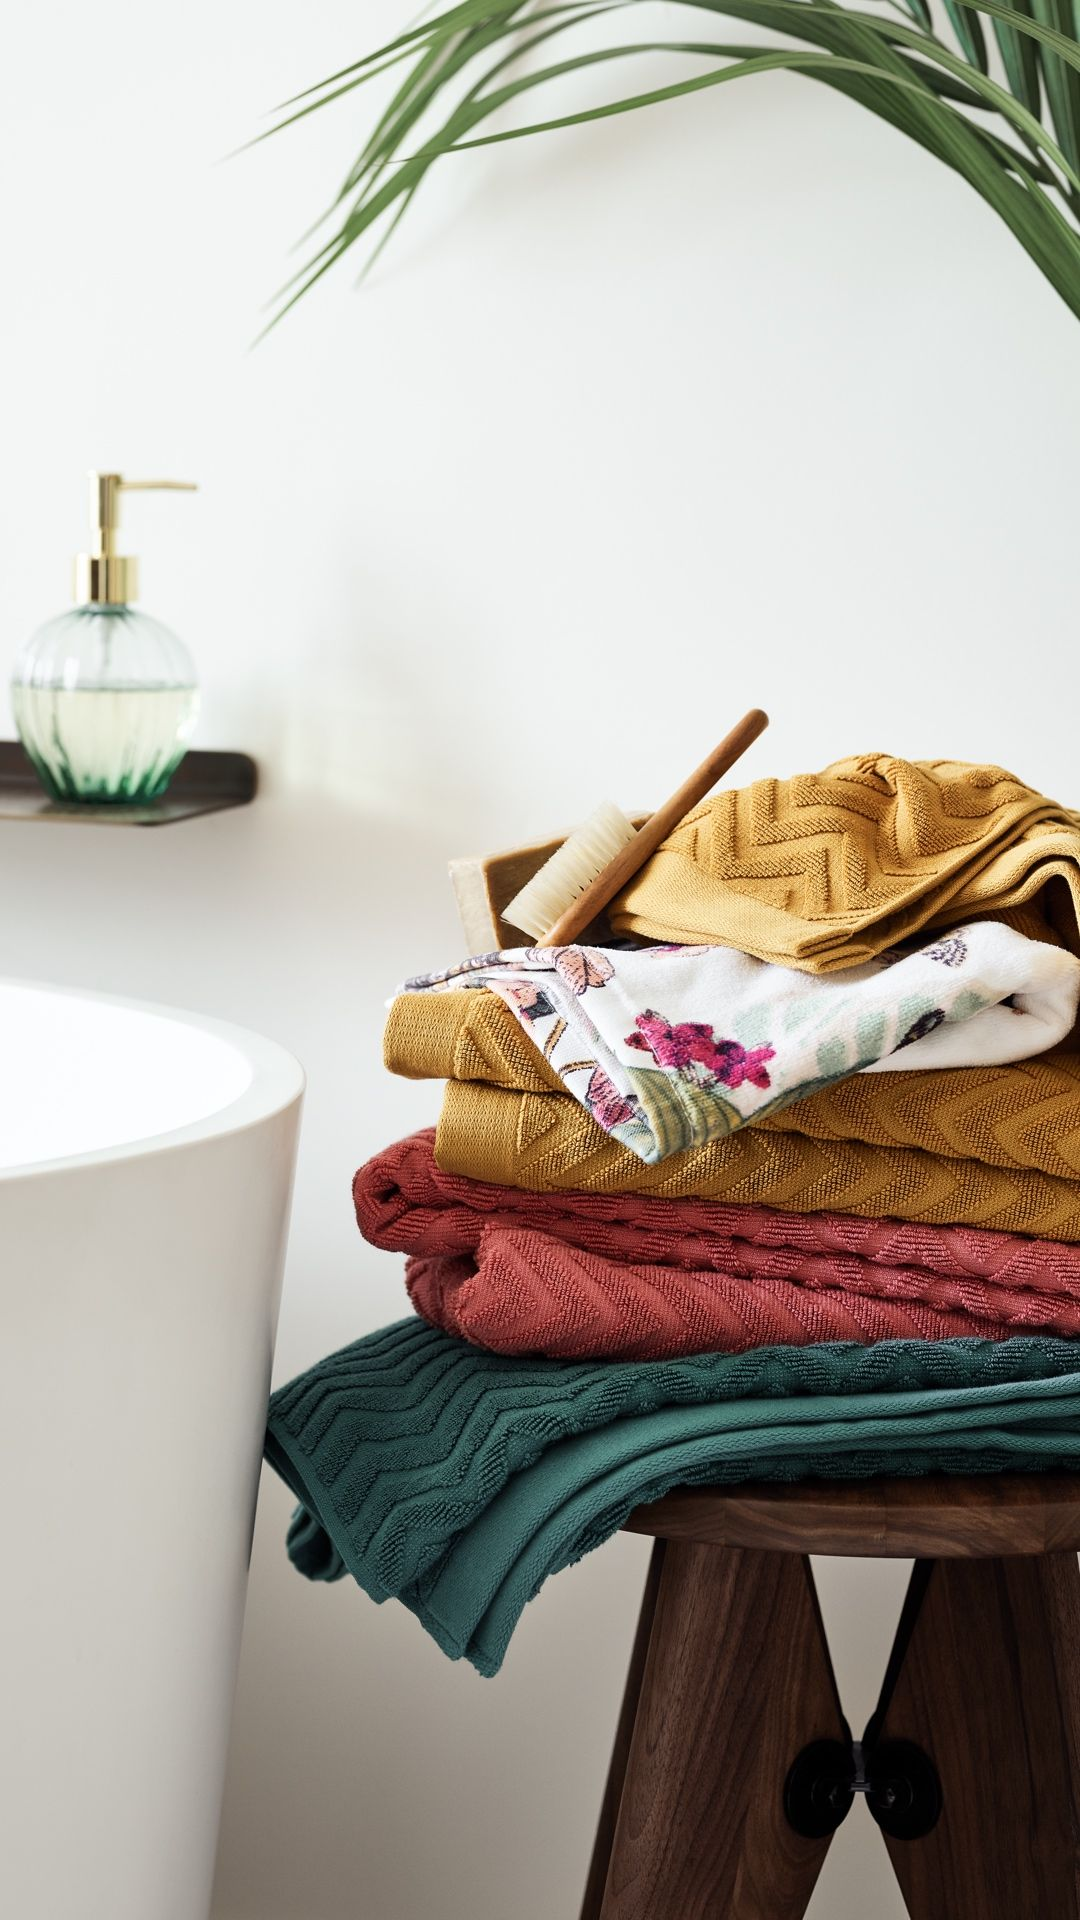 H M Home Add Some Colour To Your Bathroom With Plush Towels In Vidid Green Mustard Yellow And Raspberry Red Plush Towel H M Home Red Towels